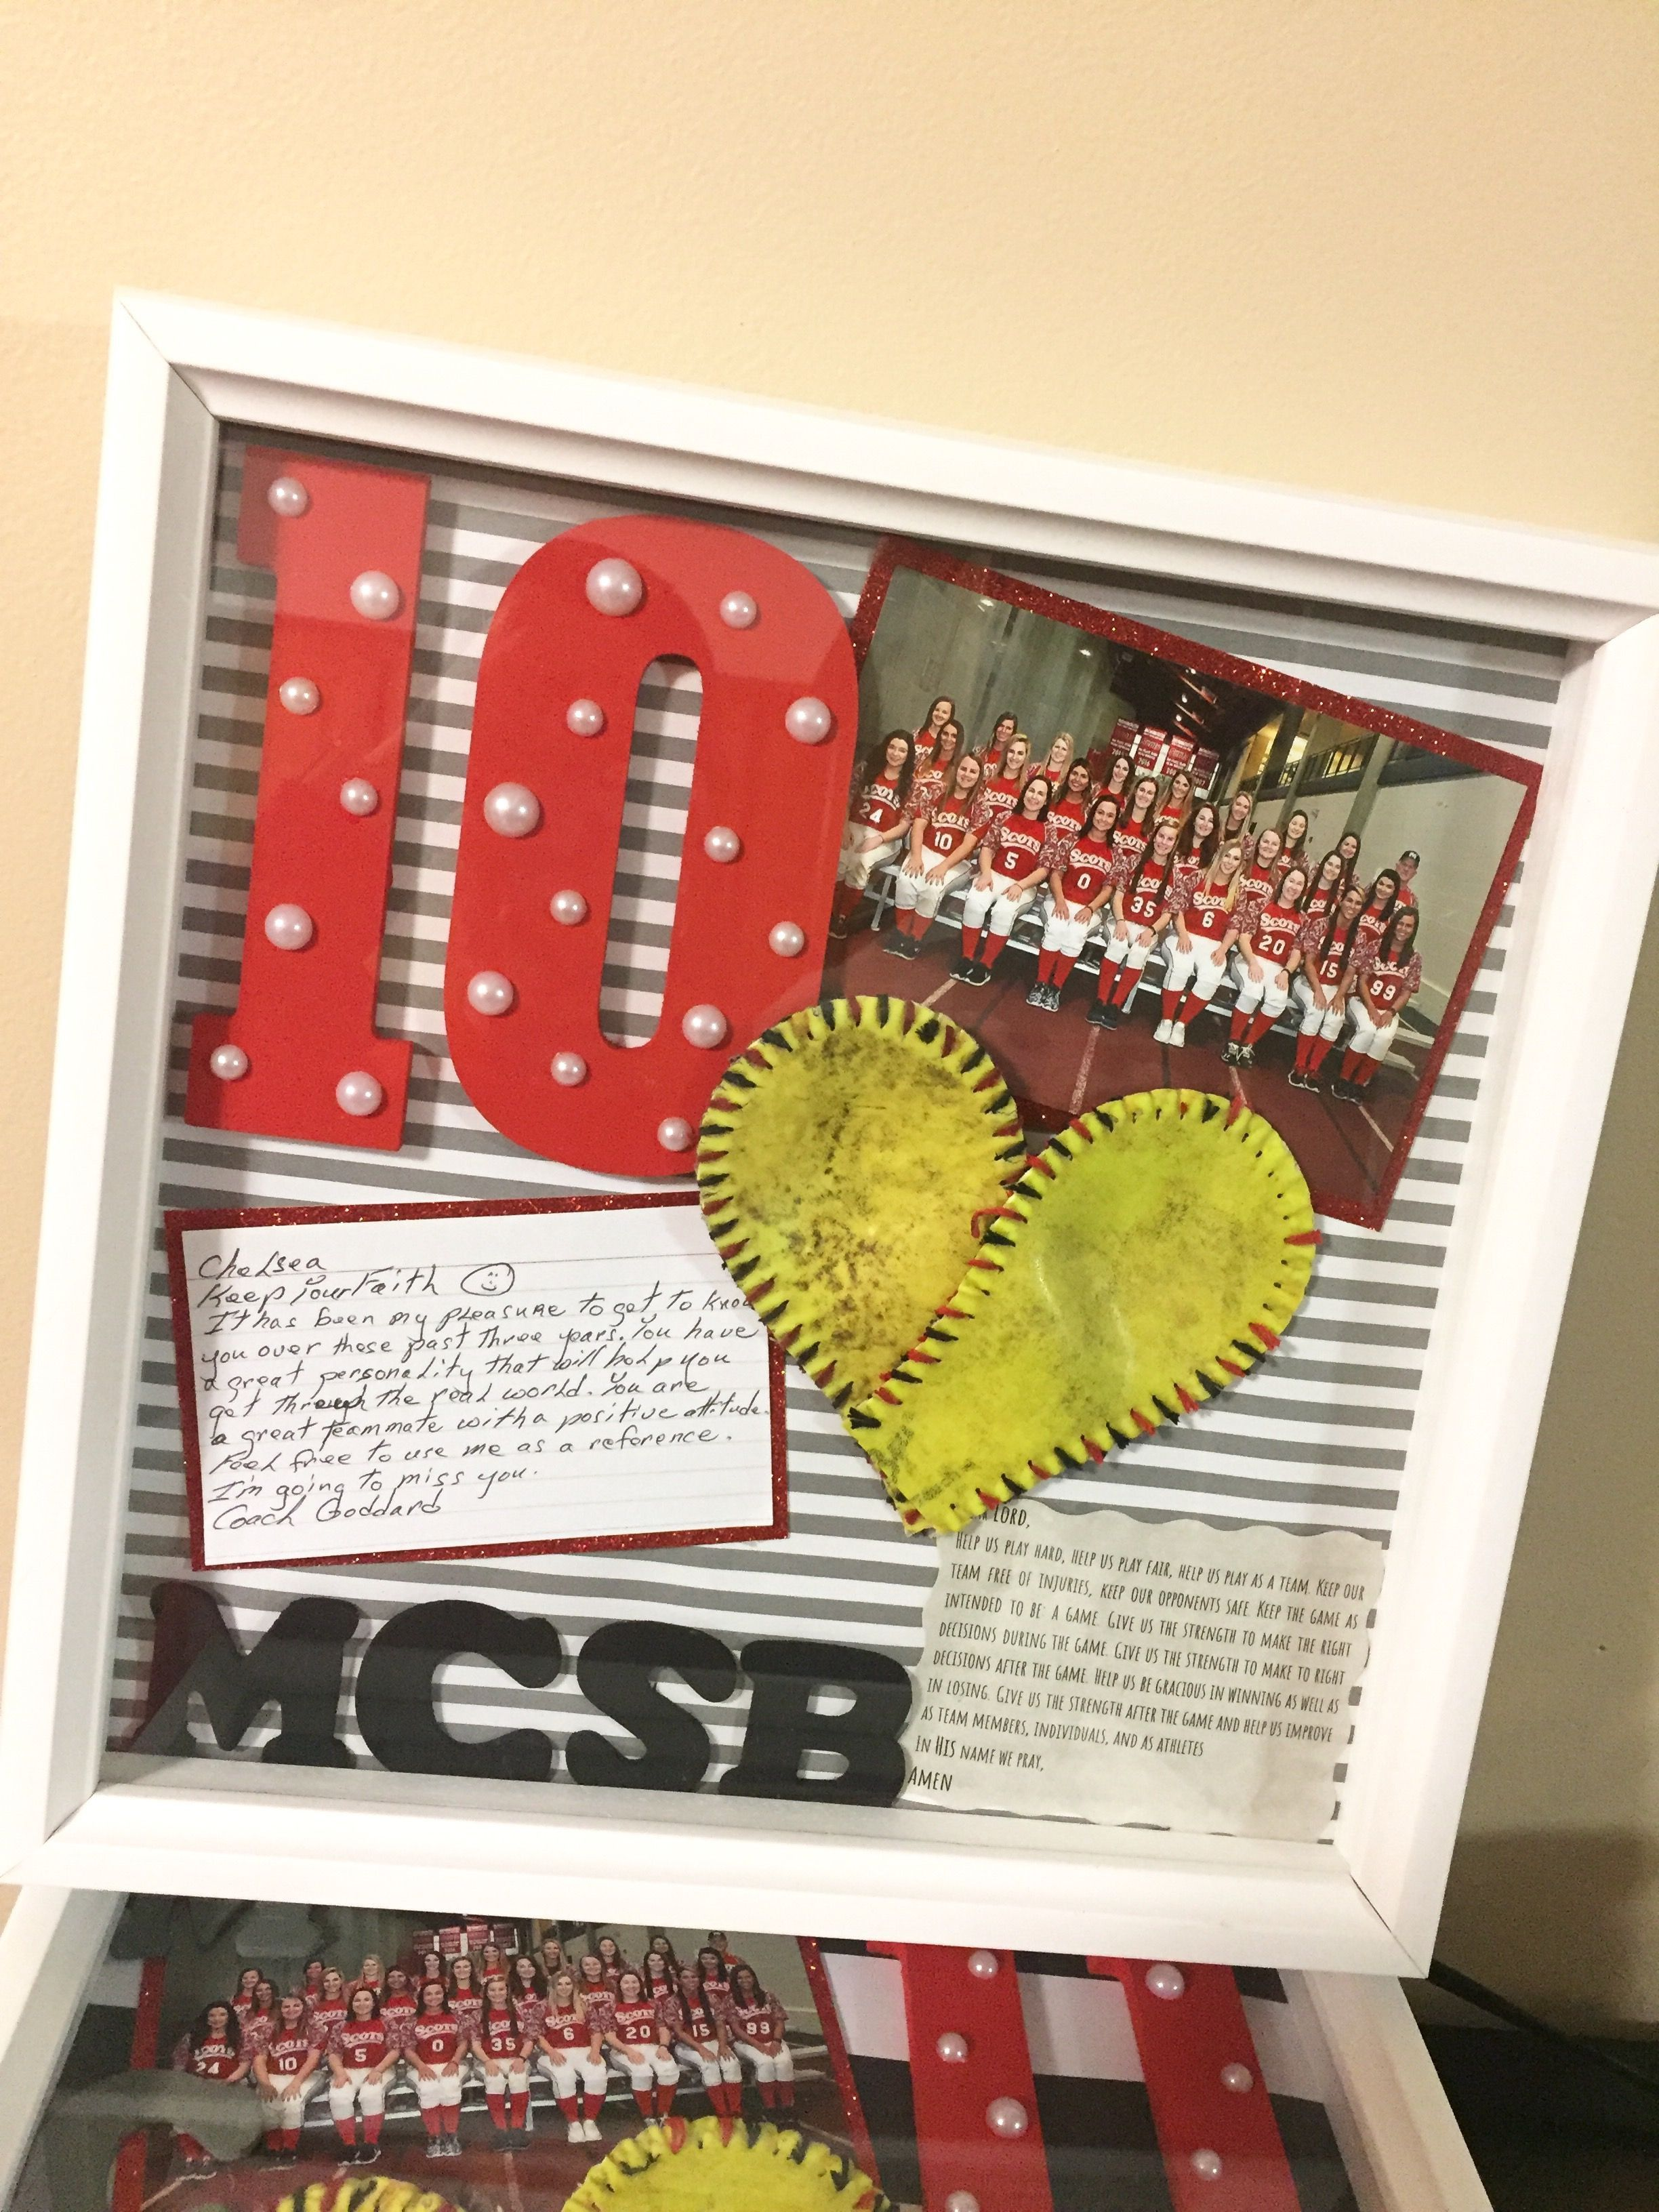 Best 20 Gift Ideas For Dad On Senior Night That Are Out Of This World Home Inspiration And Diy Crafts Id Senior Gifts Senior Night Gifts Senior Night Posters